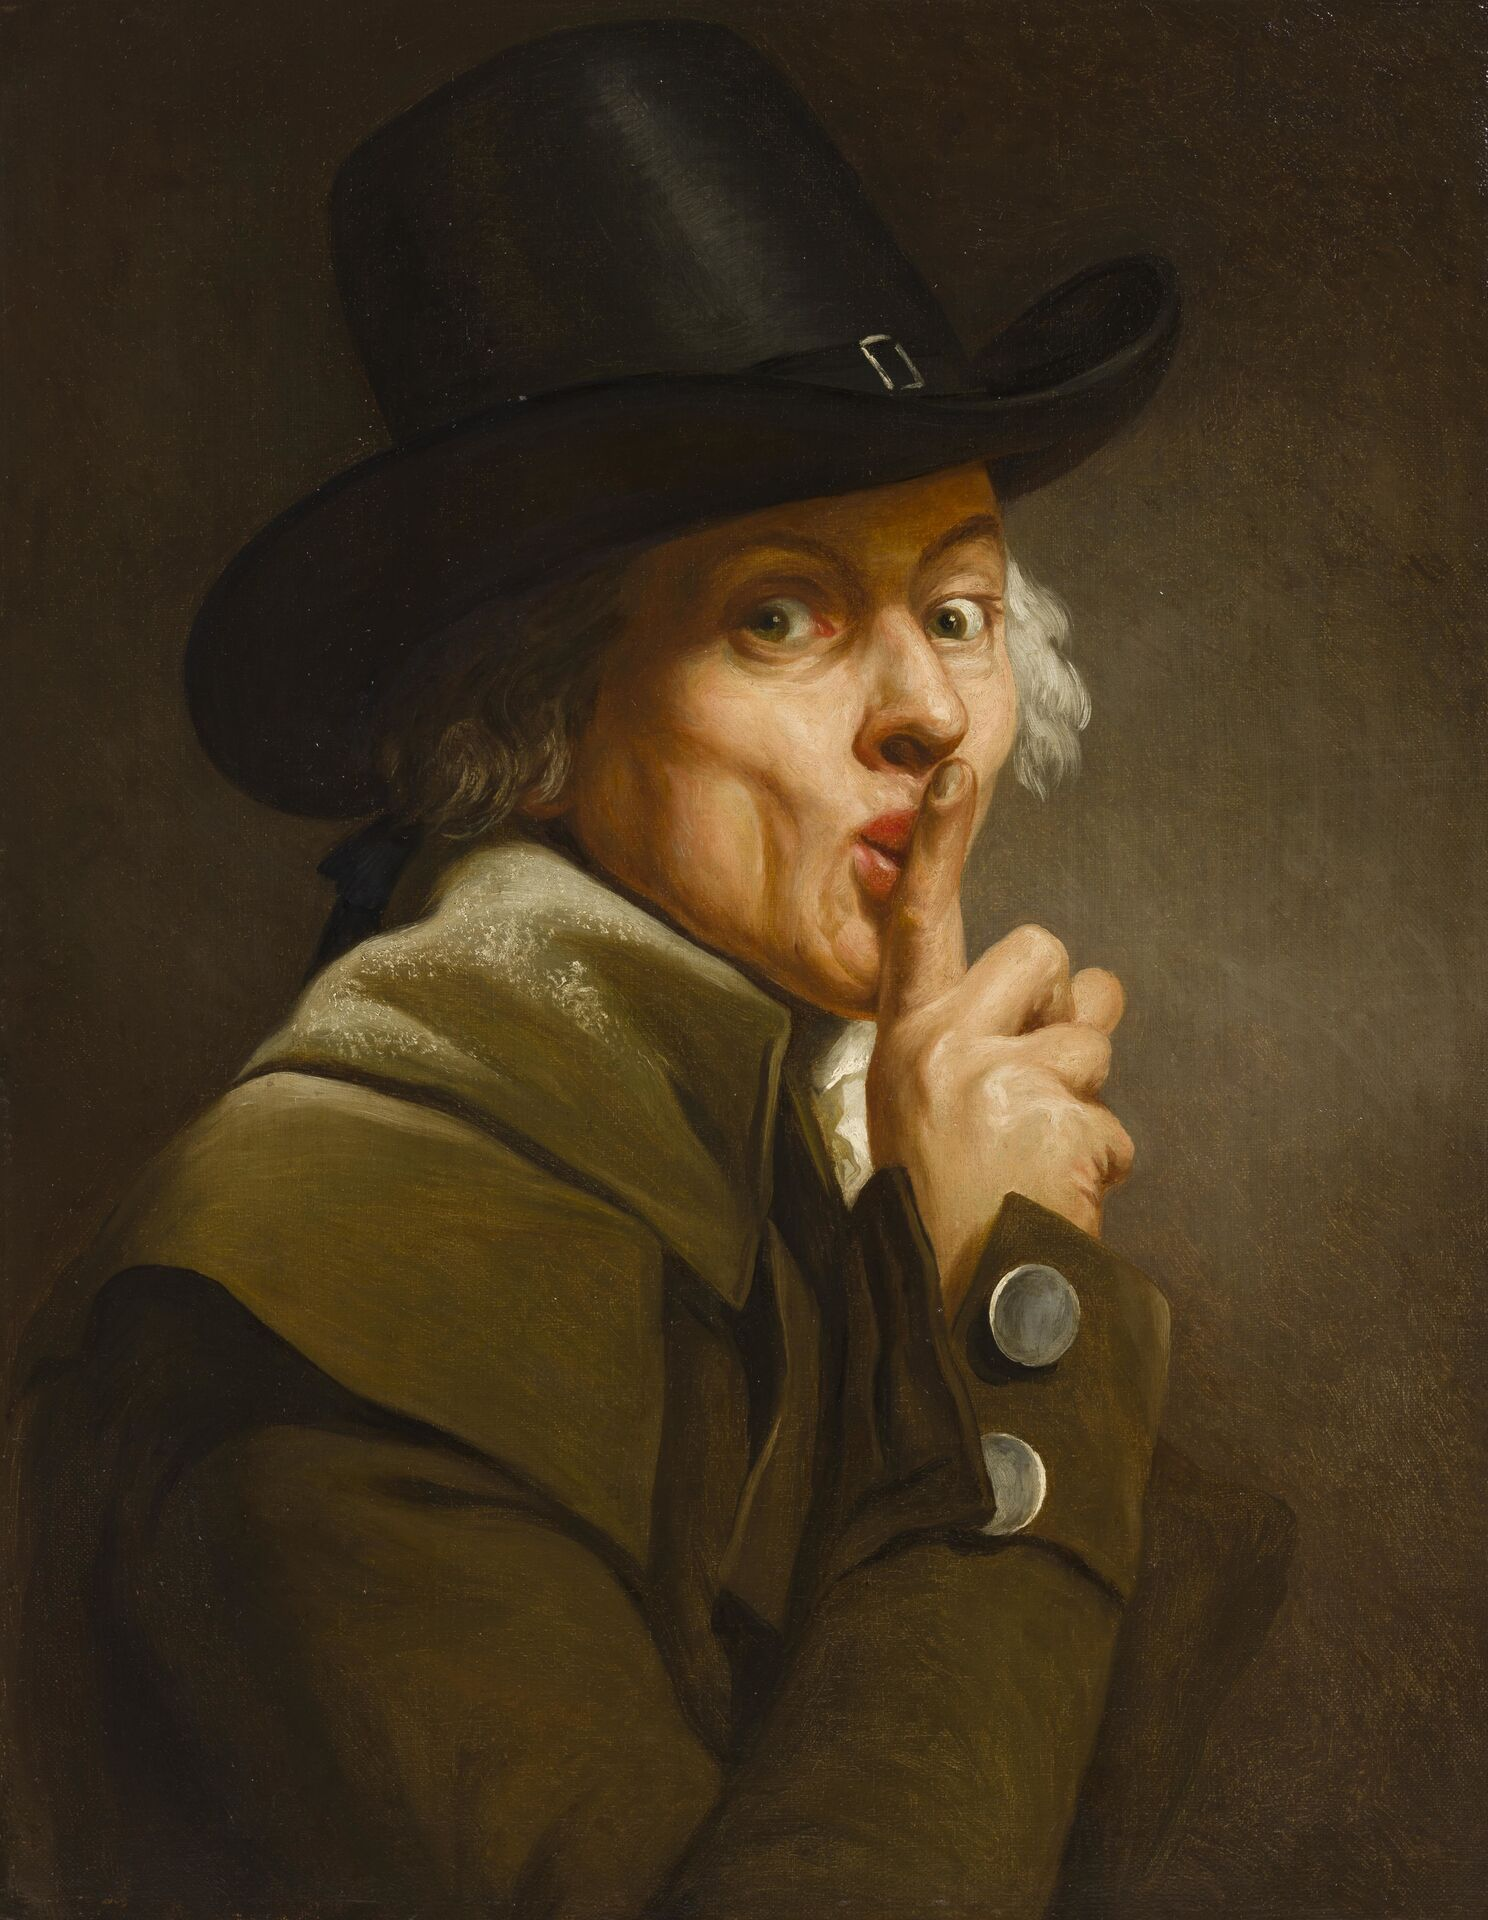 Joseph Ducreux, Self-portrait, entitled Le Silence